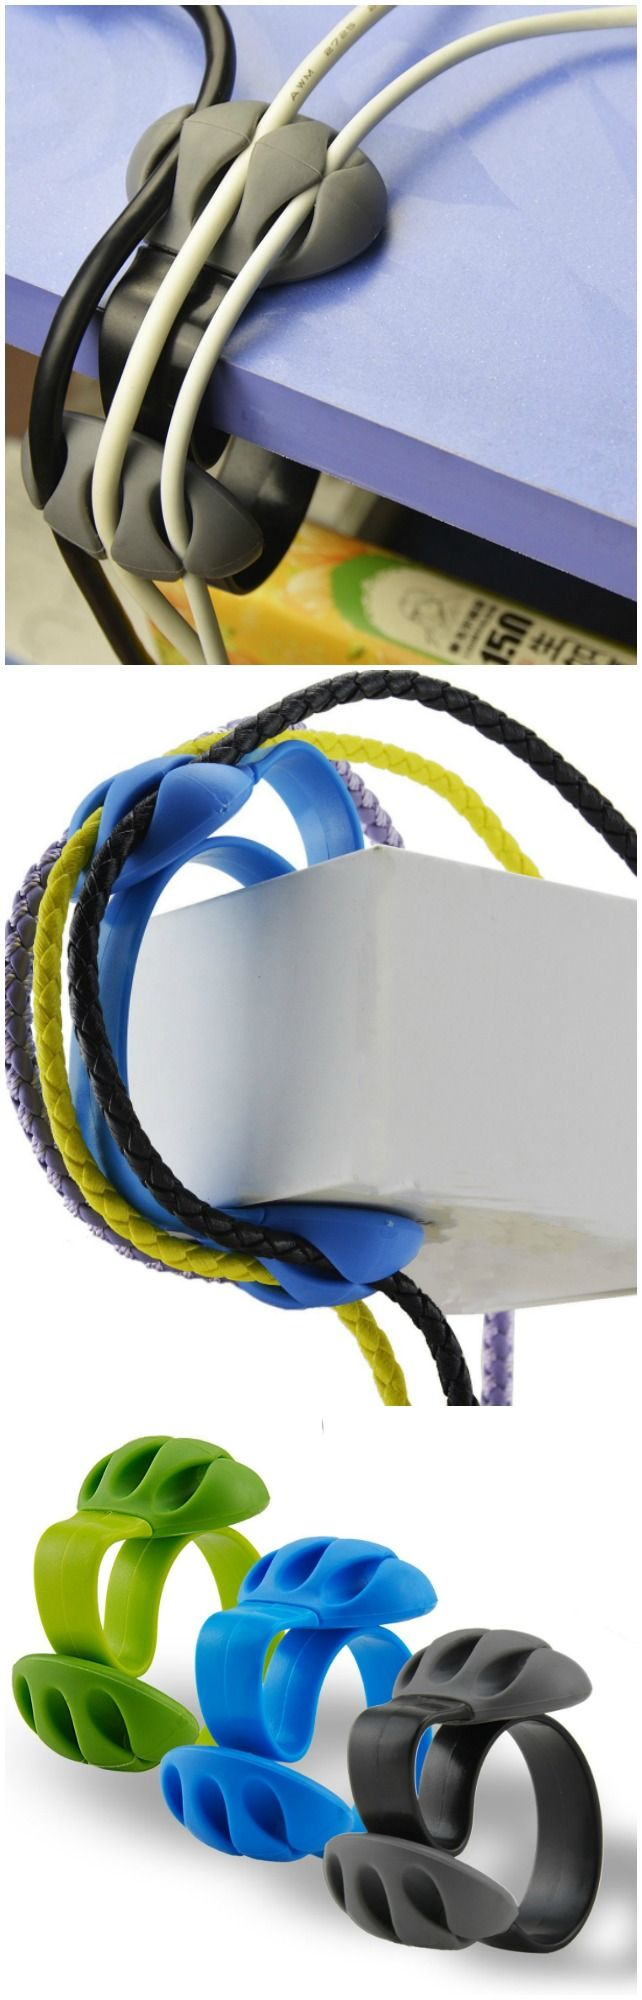 Cord Management System #affiliate